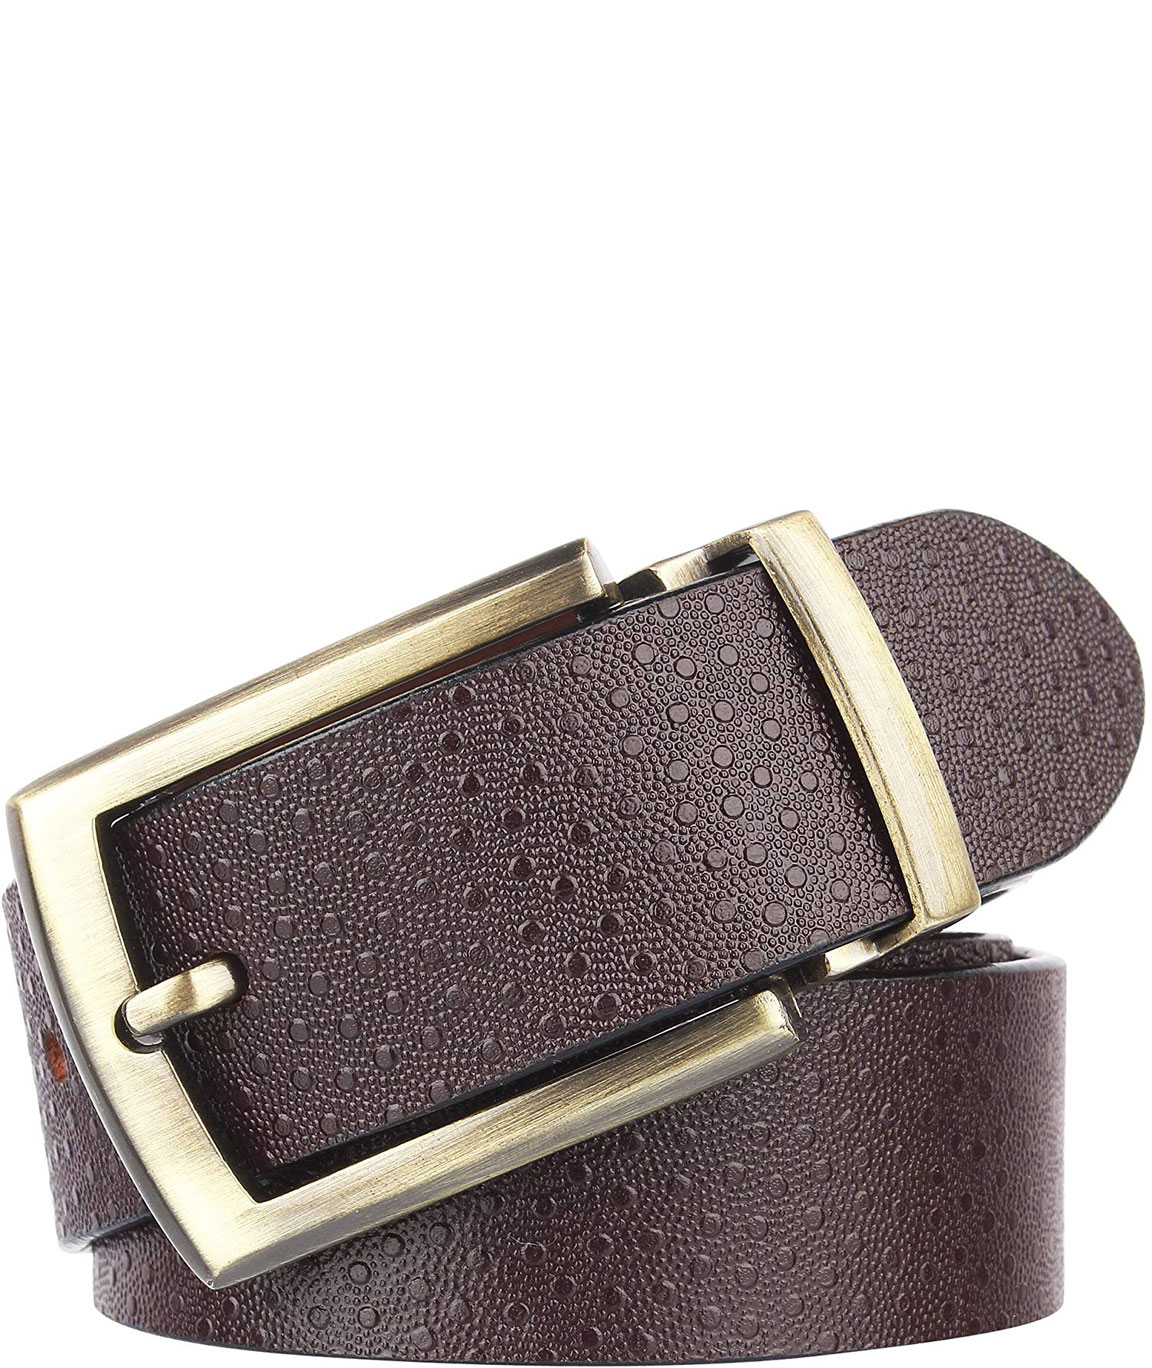 Alfami Mens Genuine Leather Belt Brown Colour Antique Golden Buckle All Sizes Spotted Pattern